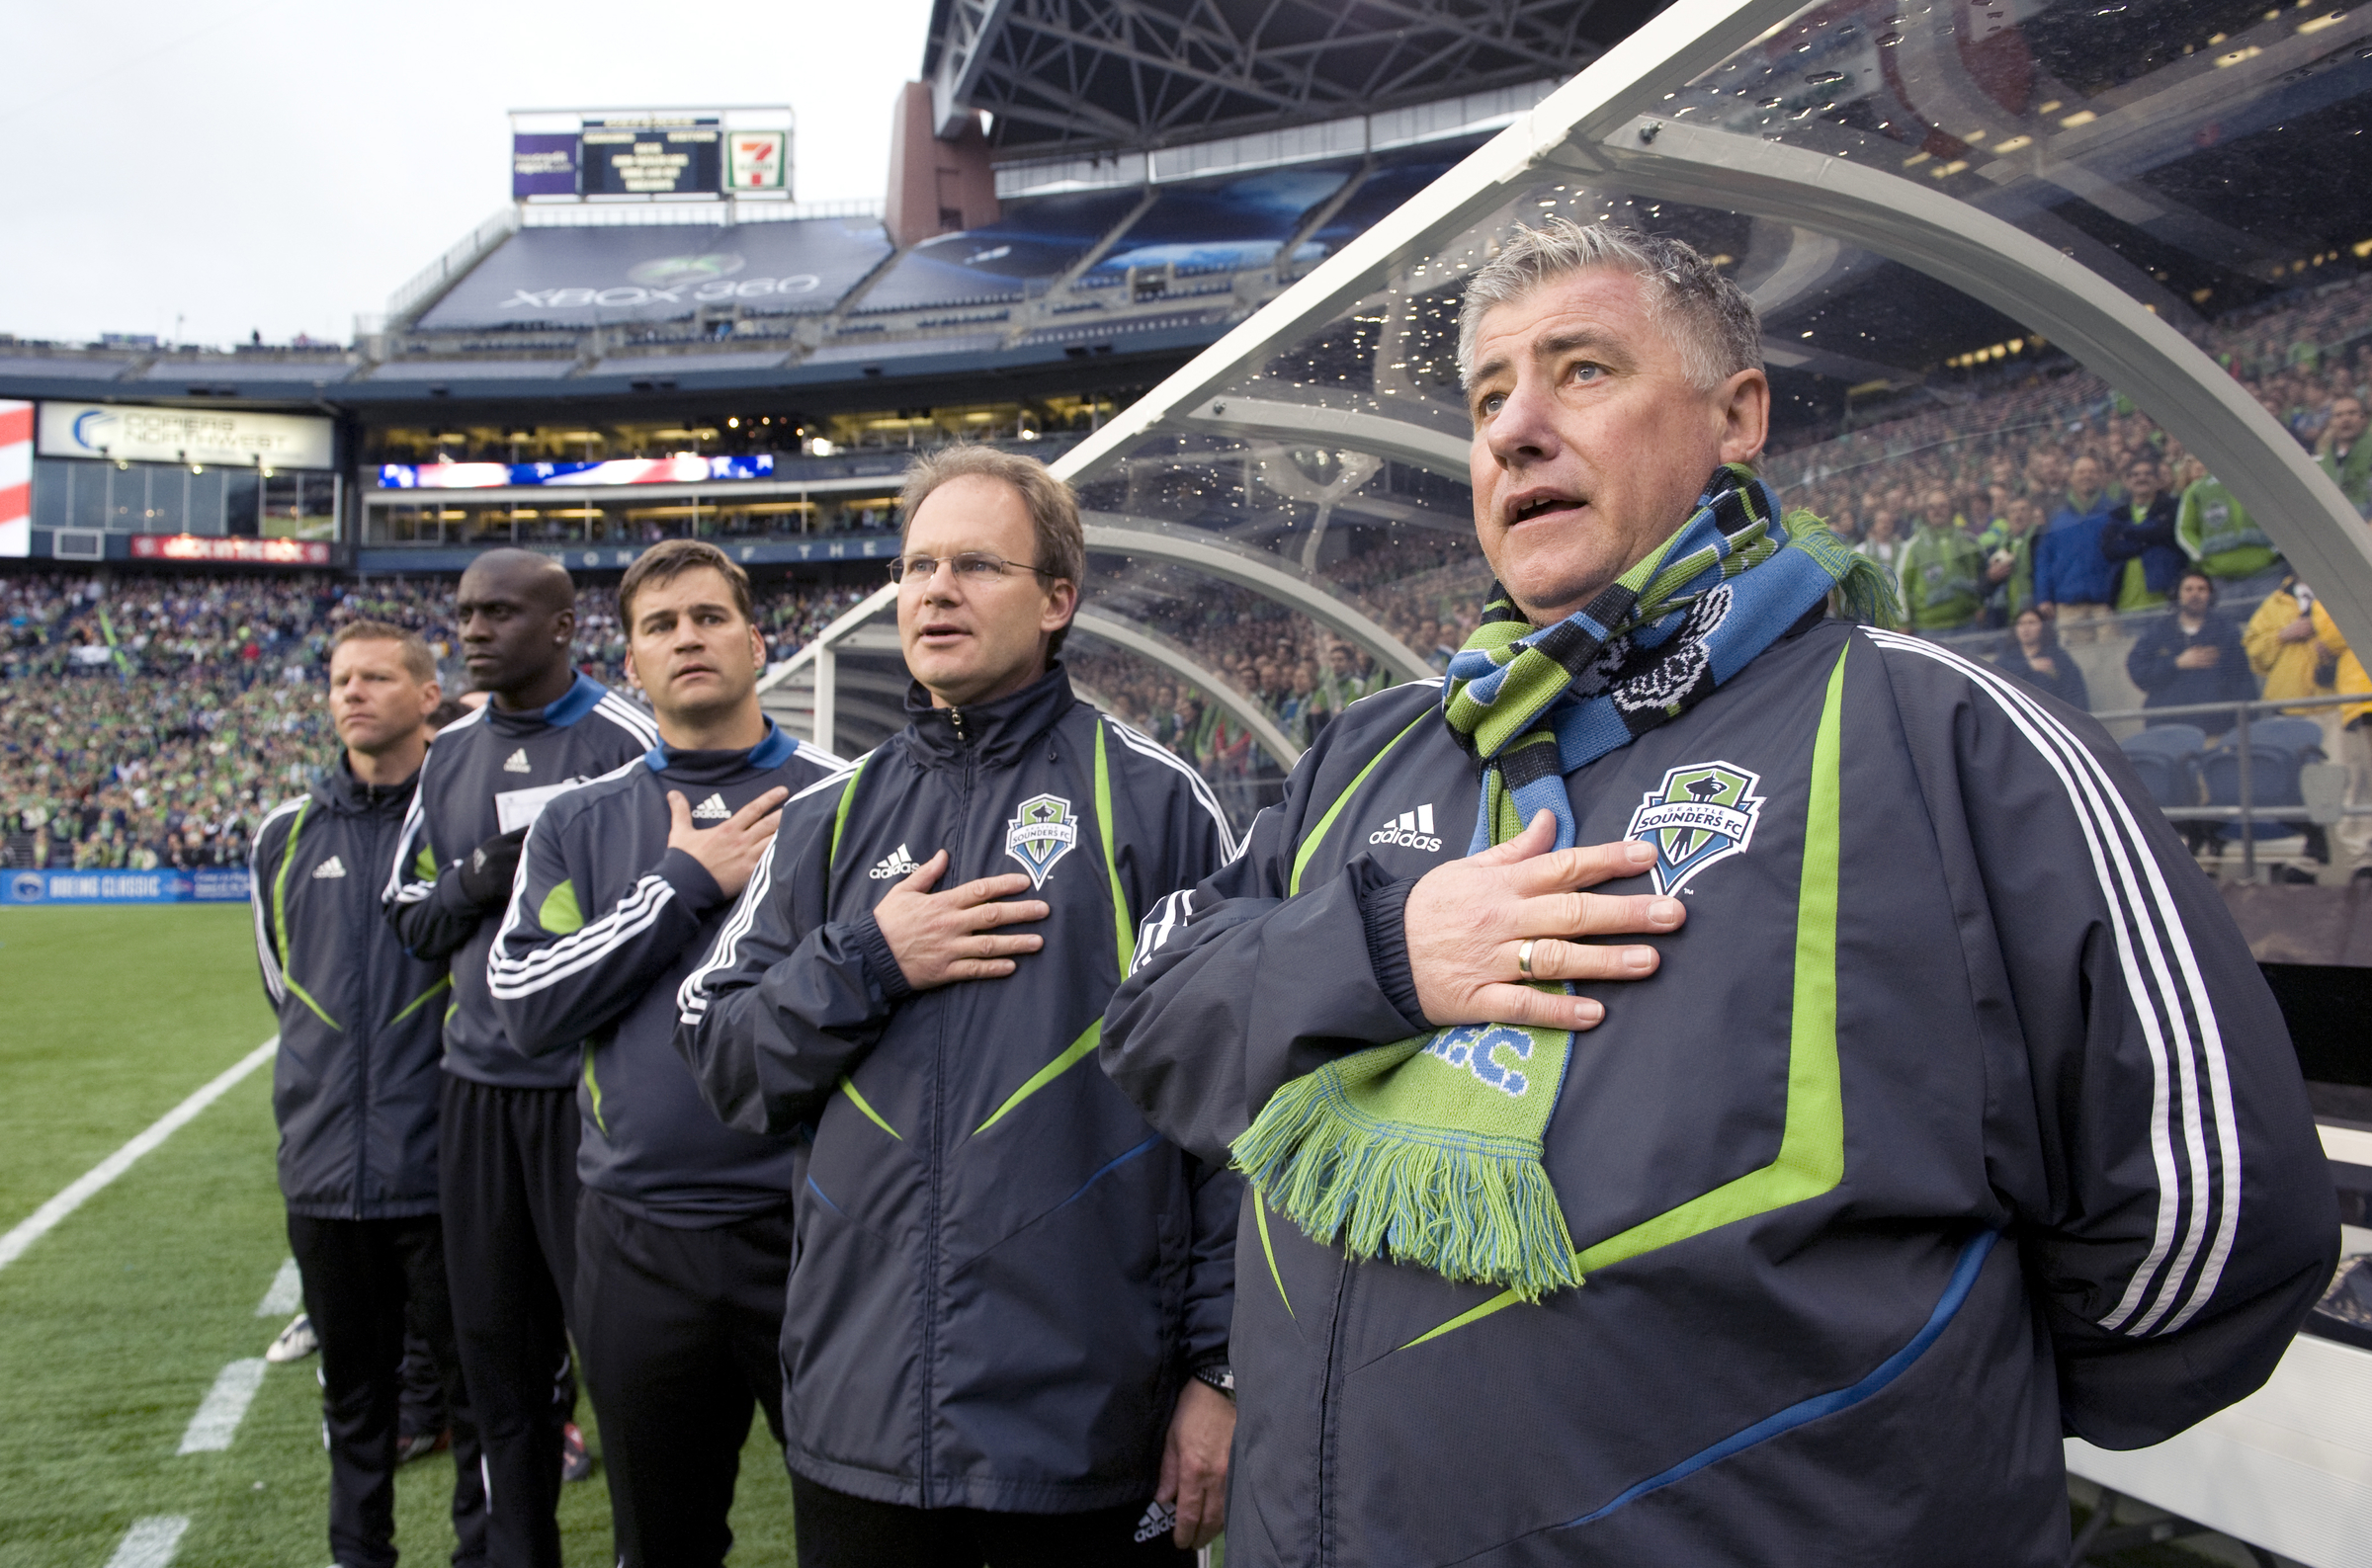 Sigi and staff